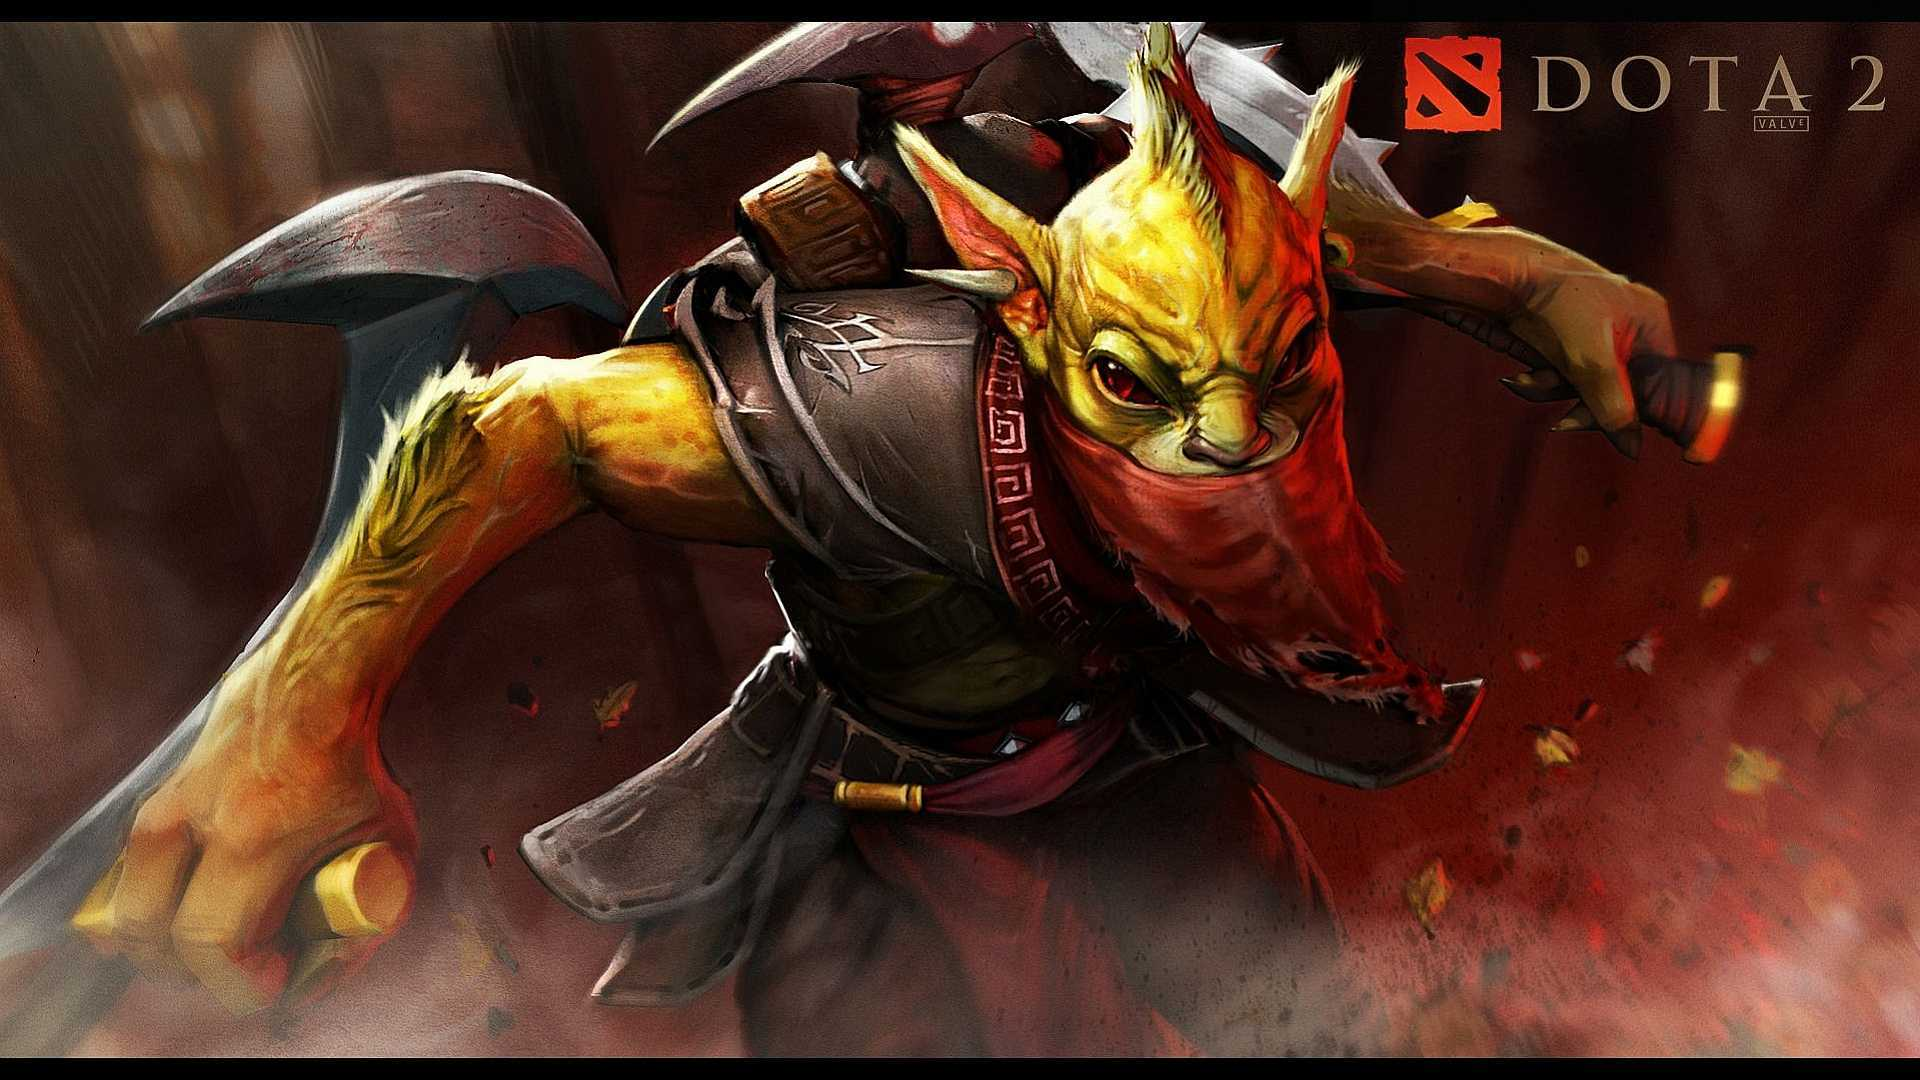 Amazing Dota 2 Hd Gaming Background For Pc Wallpaper